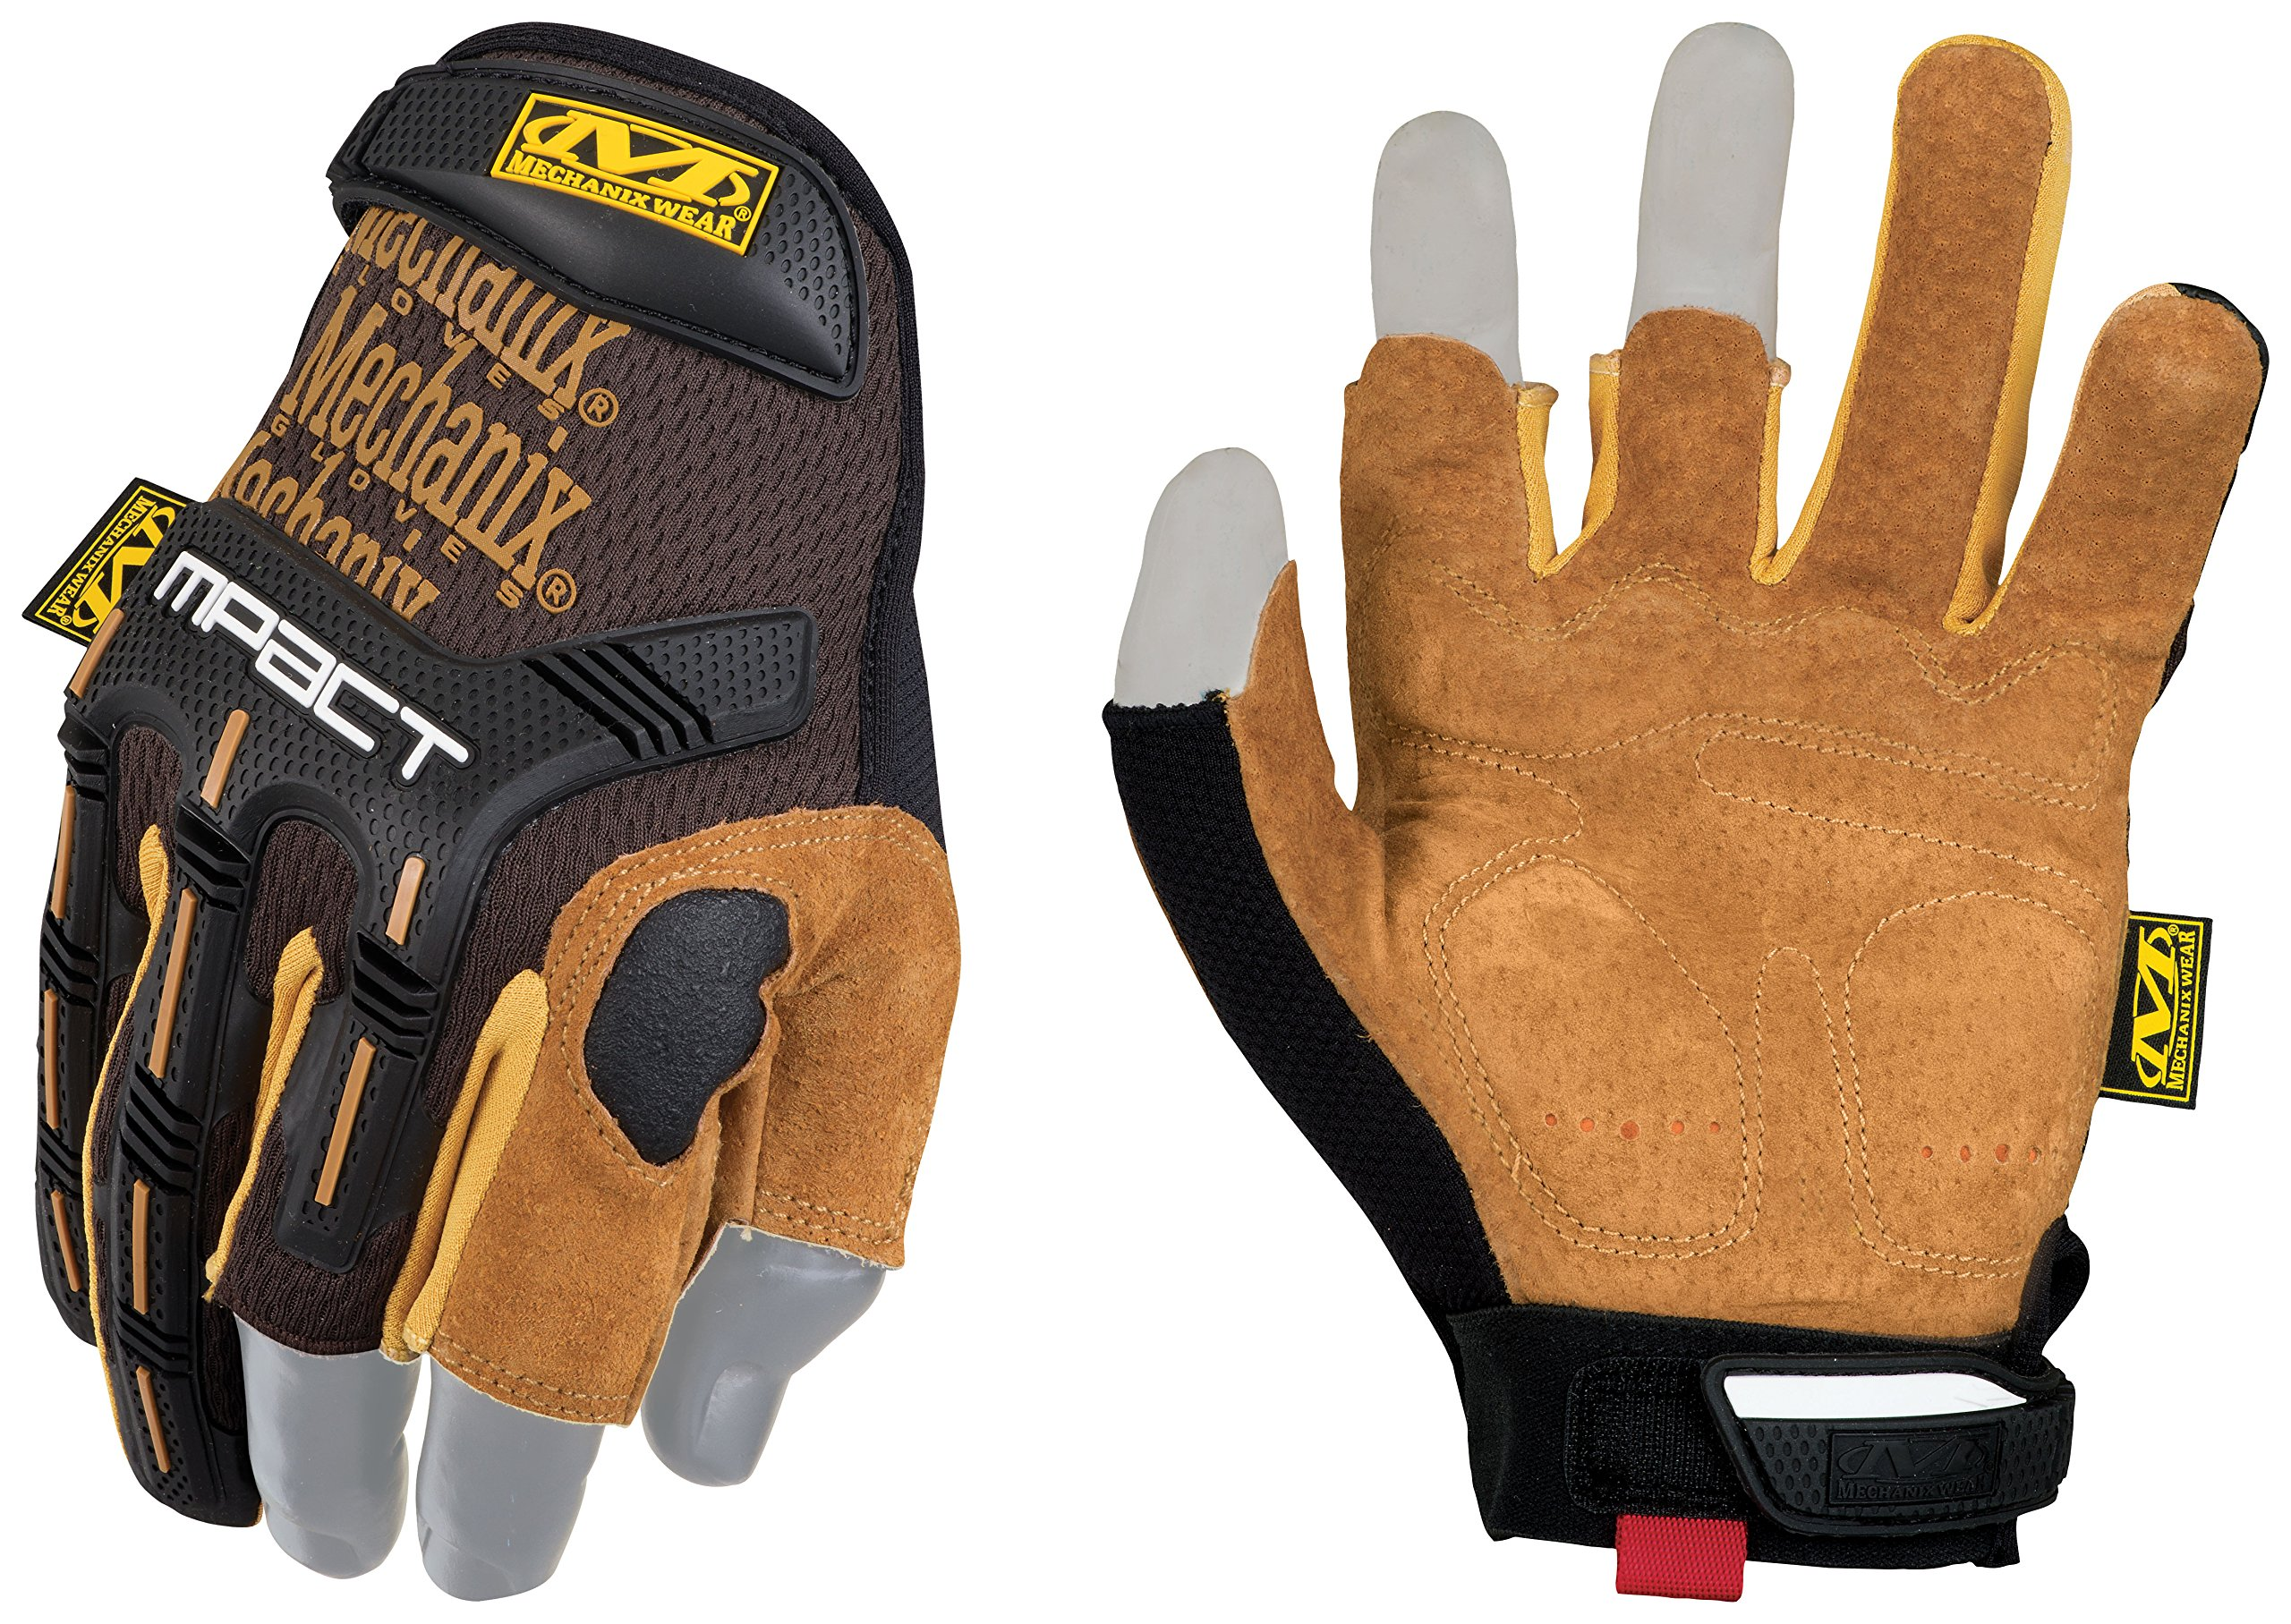 Mechanix Wear - Leather M-Pact Framer Gloves (Medium, Black/Brown) by Mechanix Wear (Image #1)